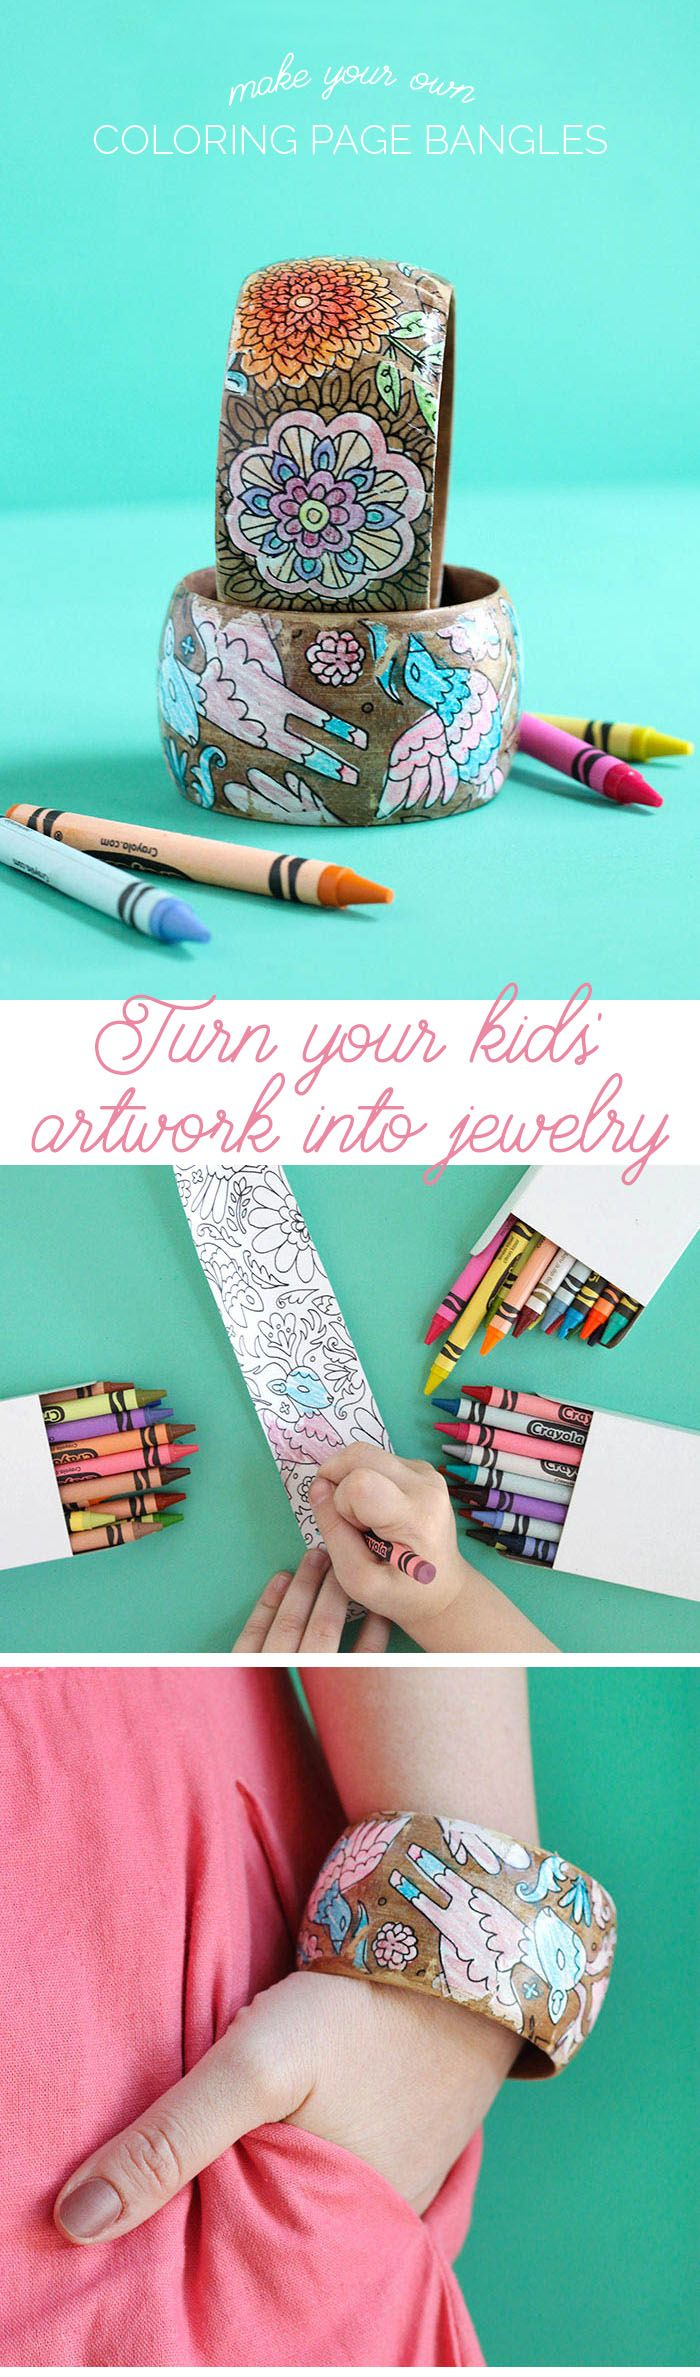 DIY Embroidered Canvas Wall Art | Pinterest | Kids artwork, Coloring ...